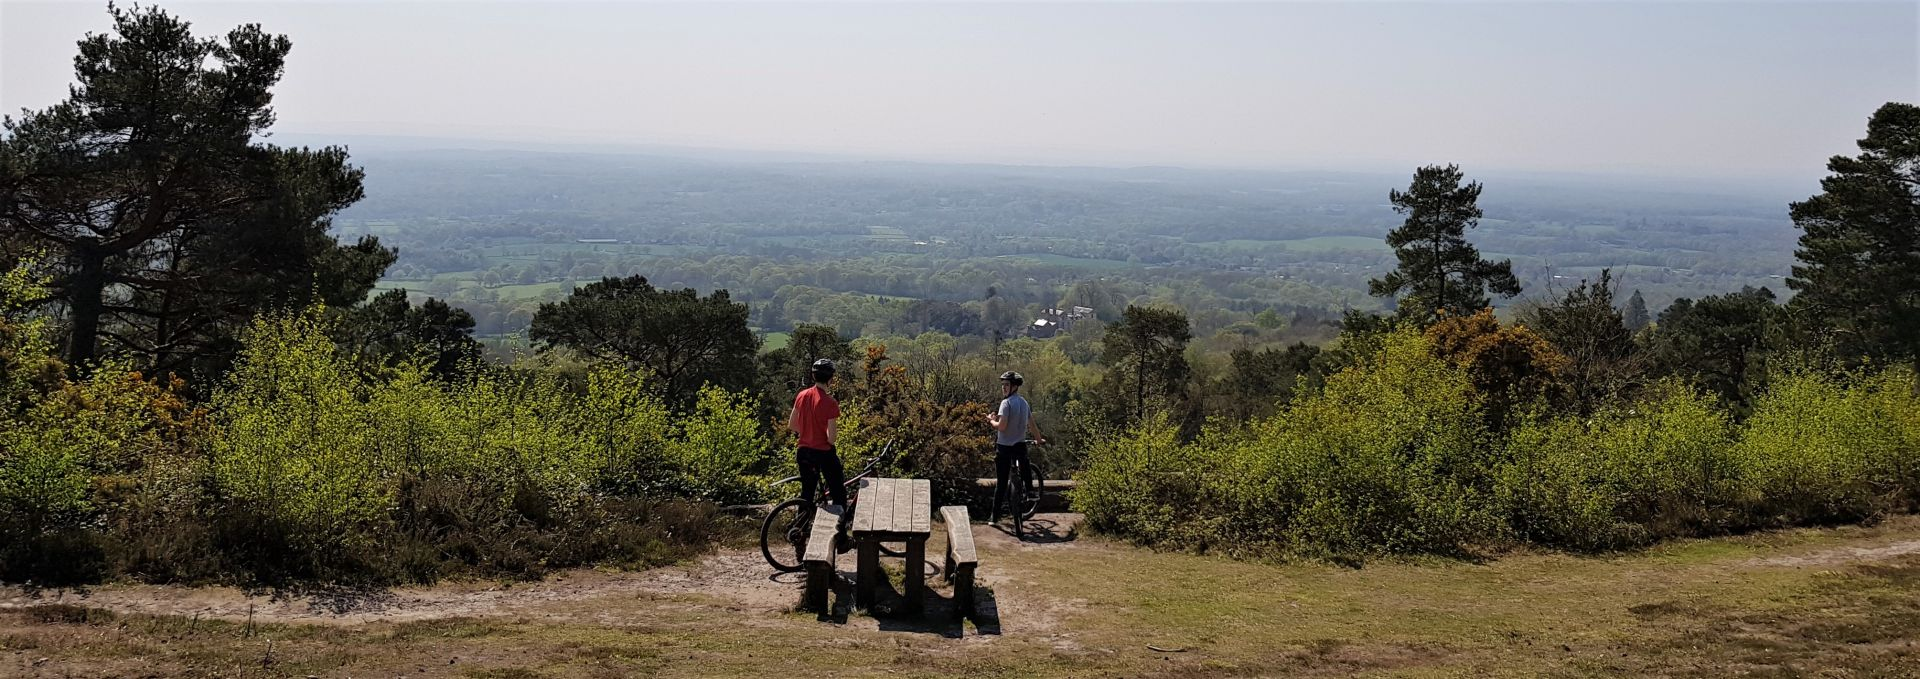 Leith Hill cycling viewpoint landscape crop.jpg